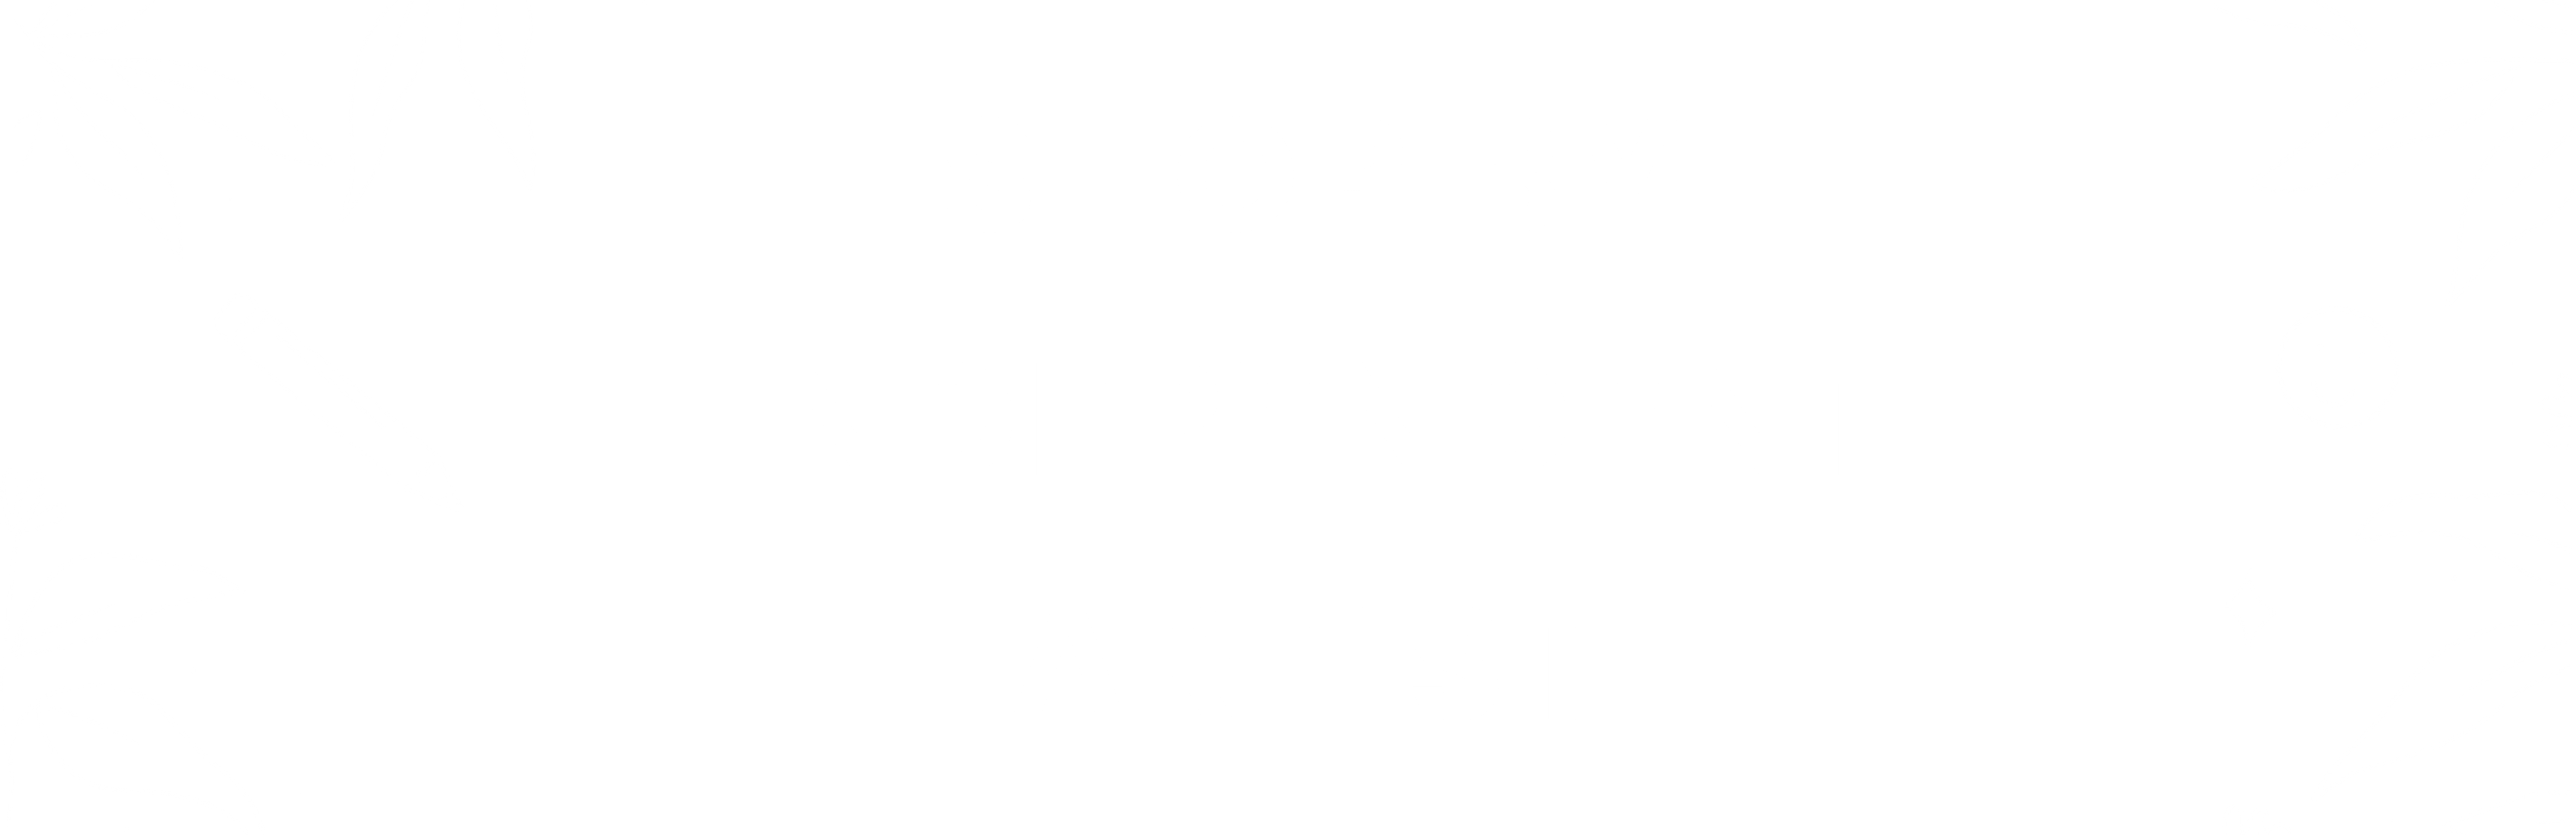 shop by independent artist